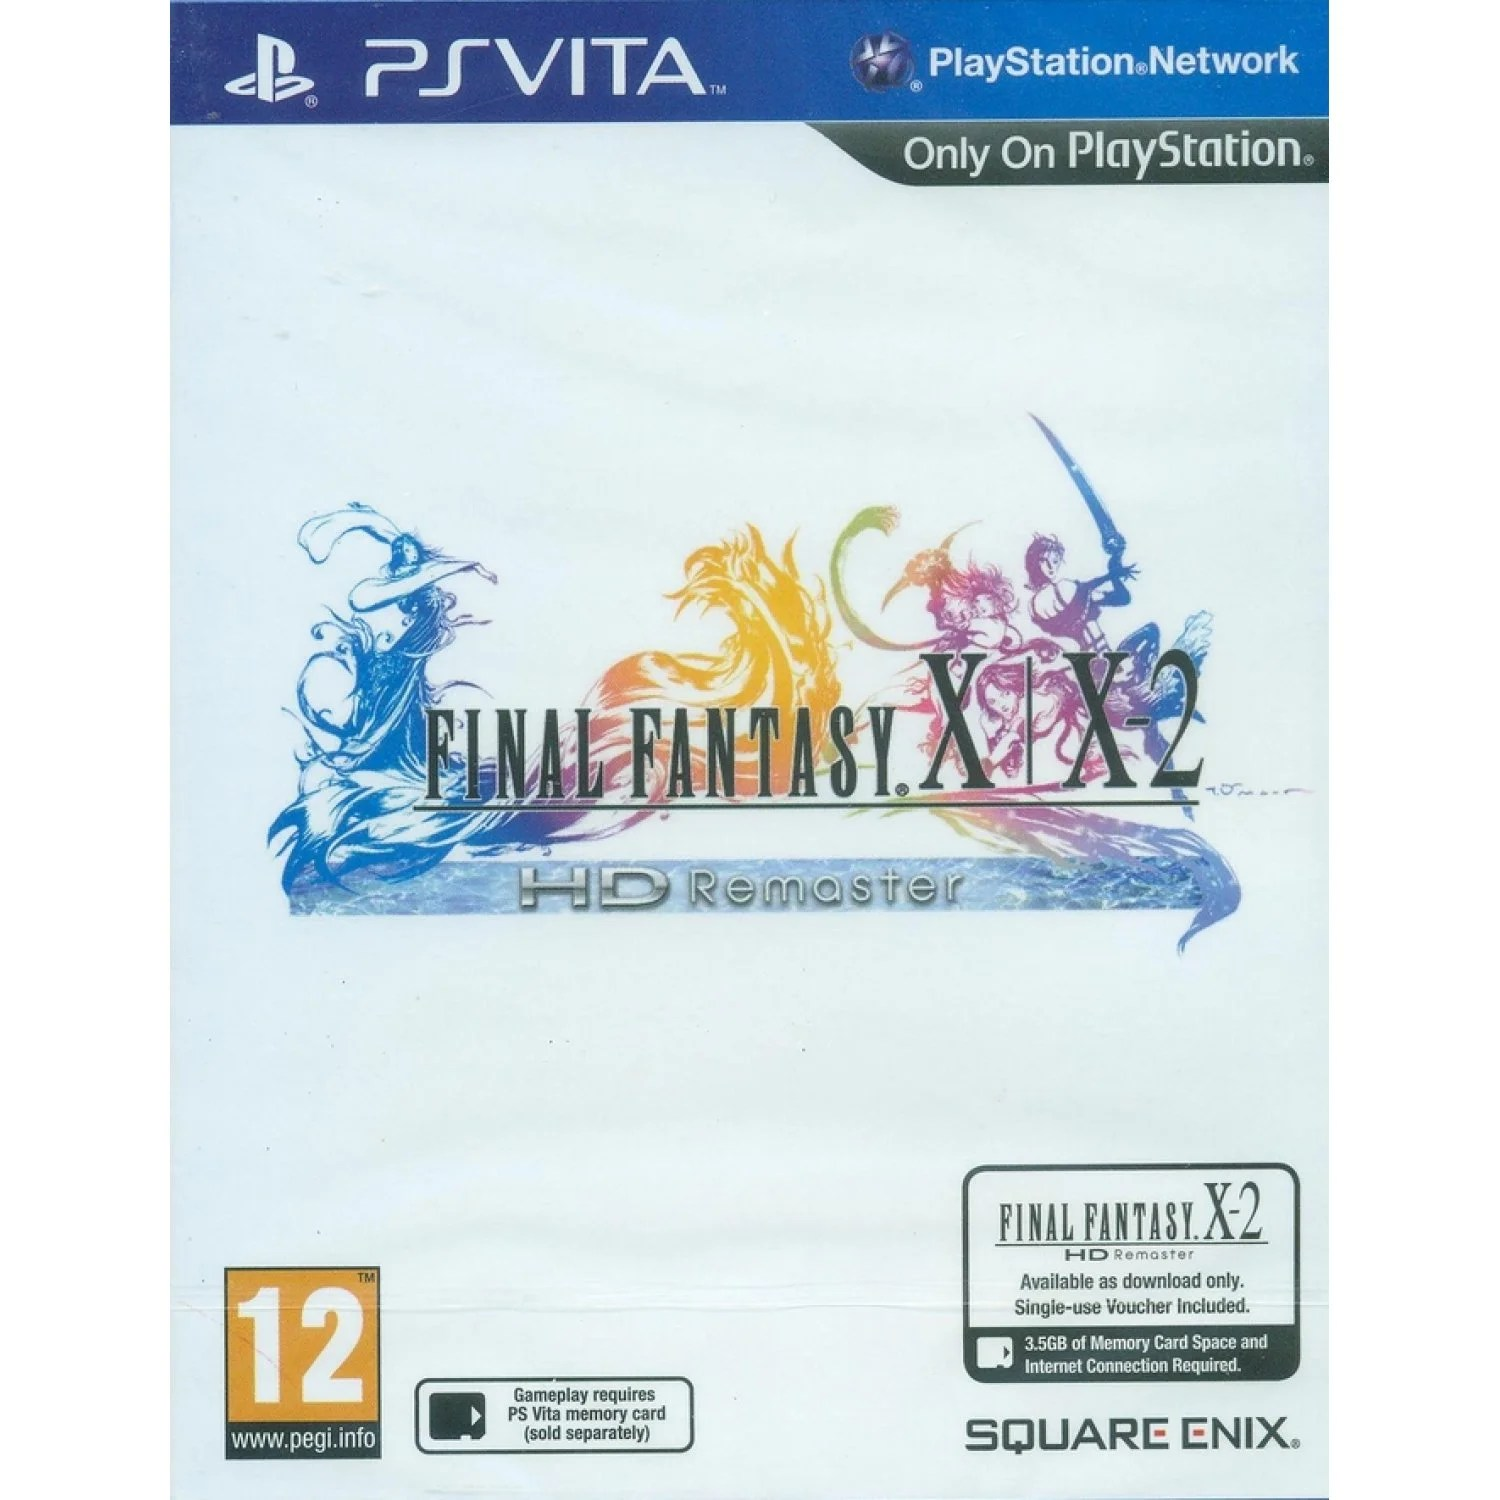 X X 2 Final Fantasy X X 2 Hd Remaster